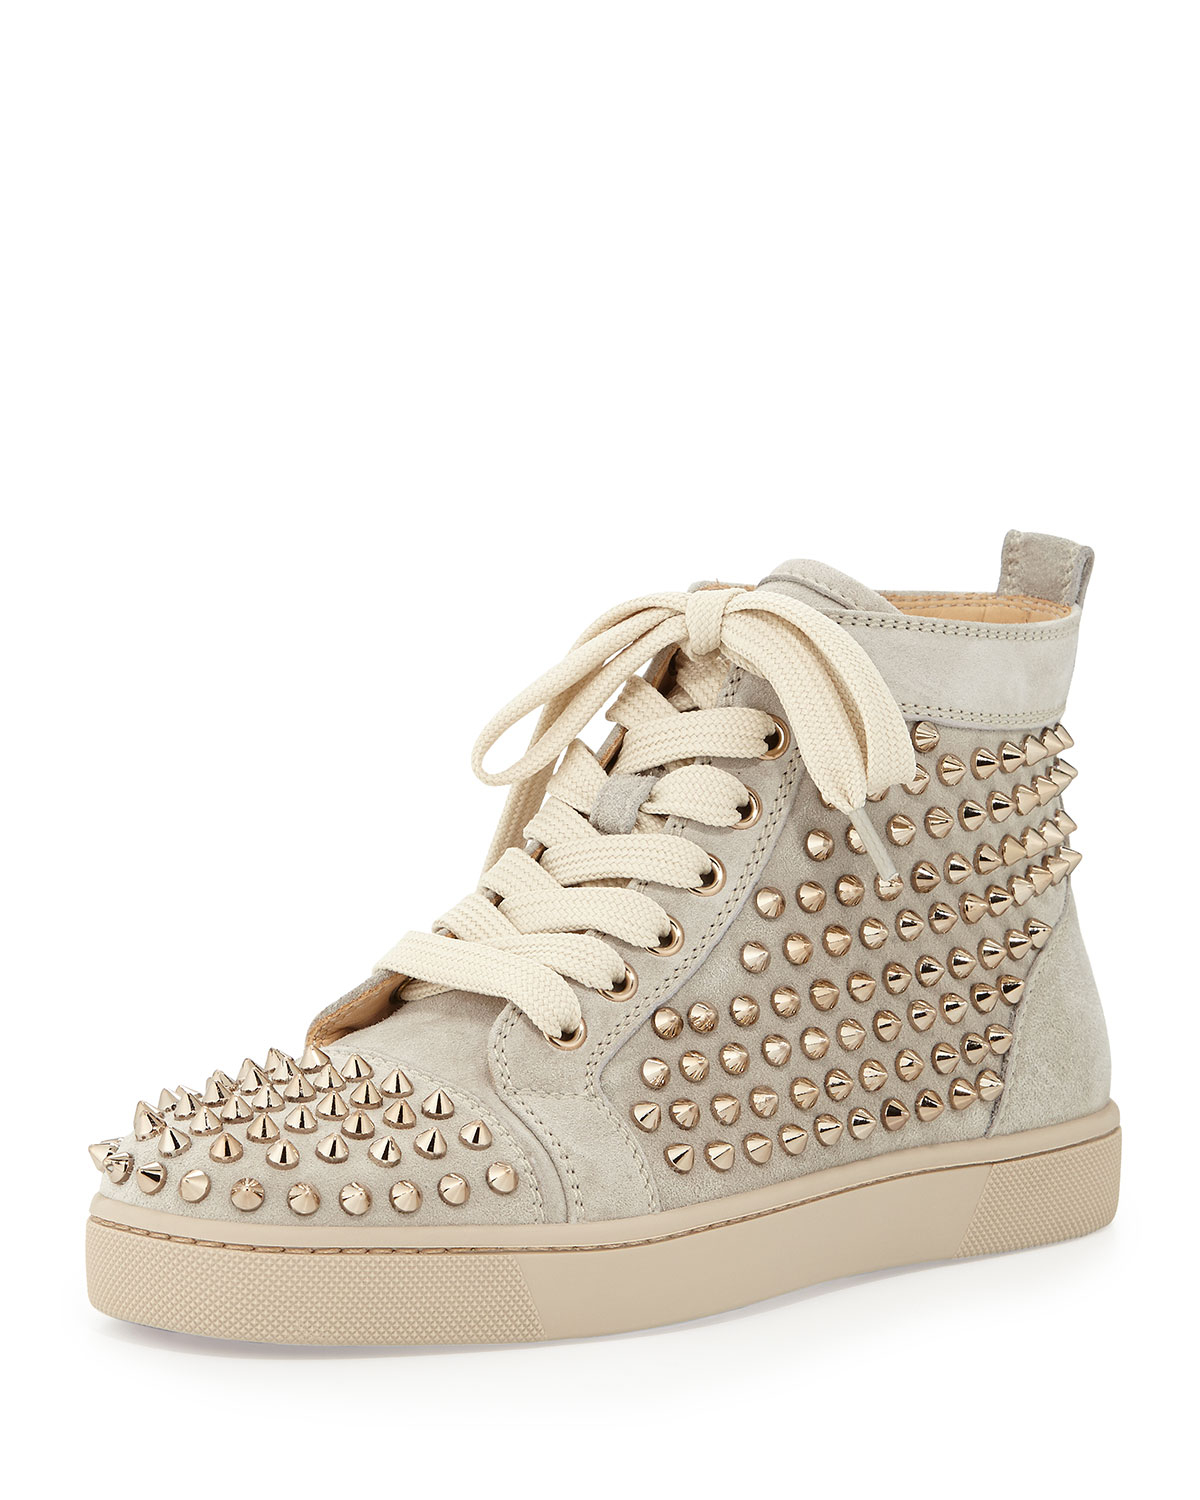 big sale 599ca 1263e Christian Louboutin Louis Spiked Suede Sneaker in Natural - Lyst